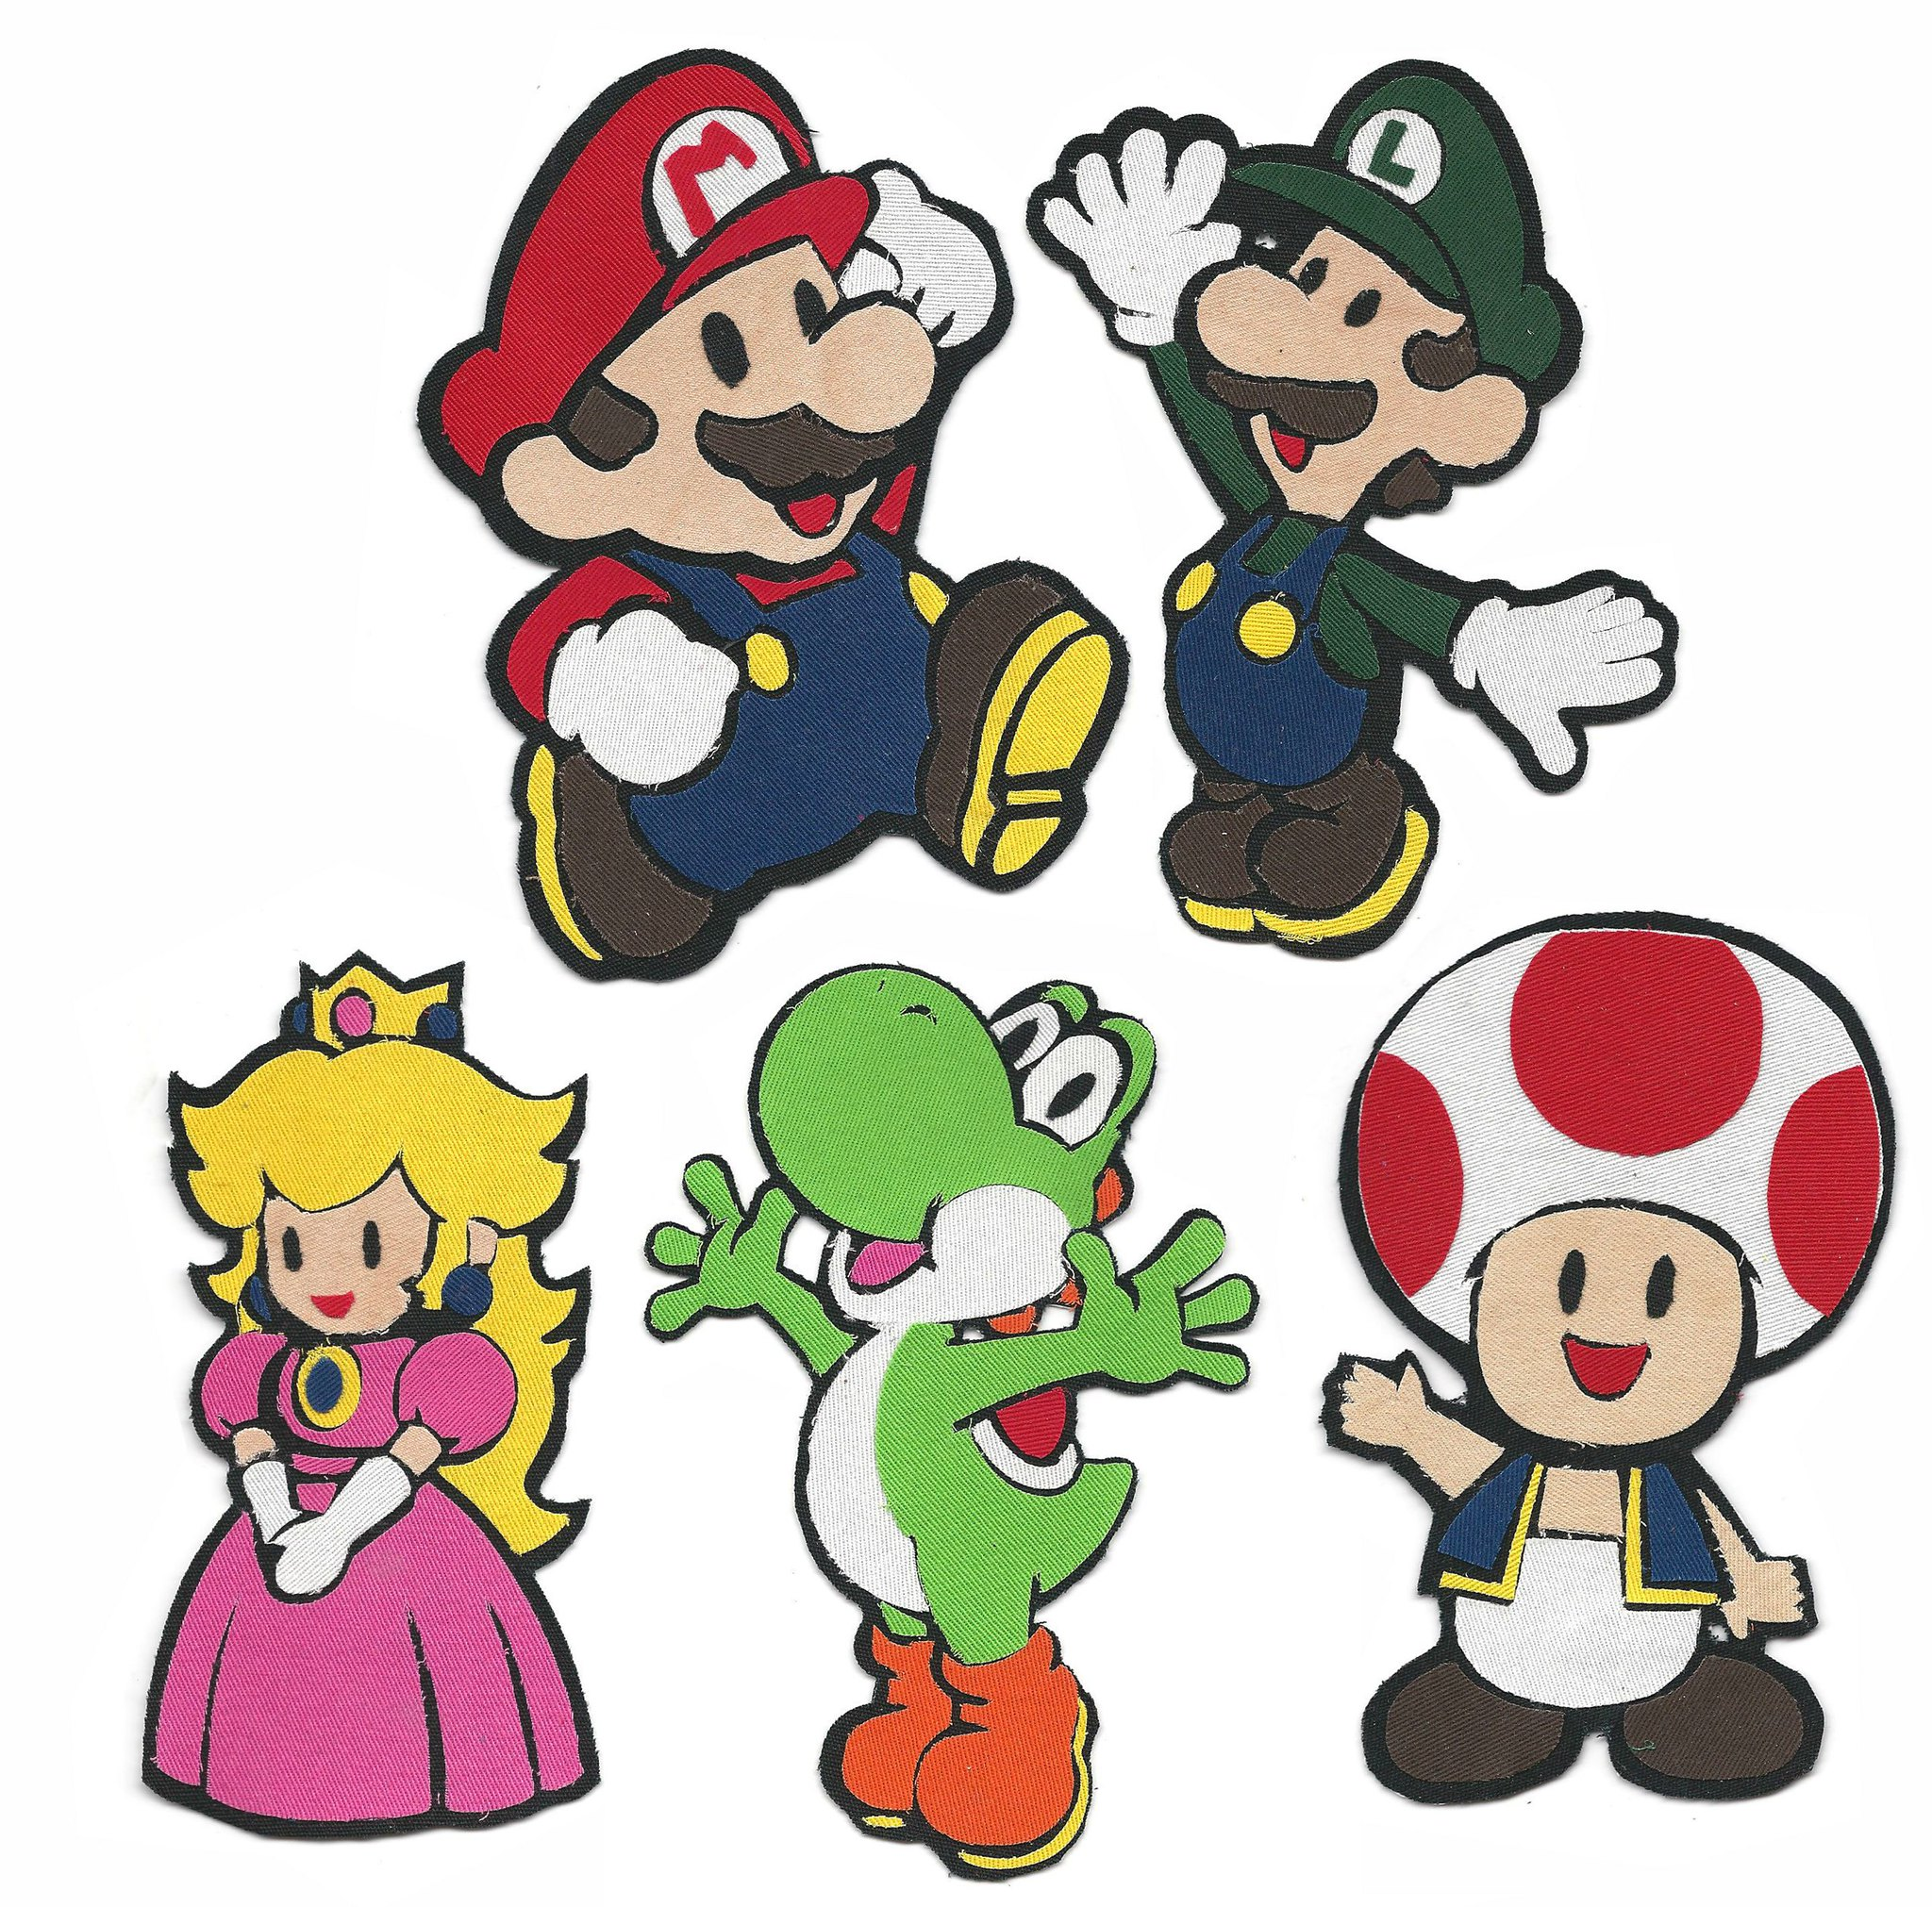 Fabric Pop Culture by Alysha Crist - Super Mario Bros.